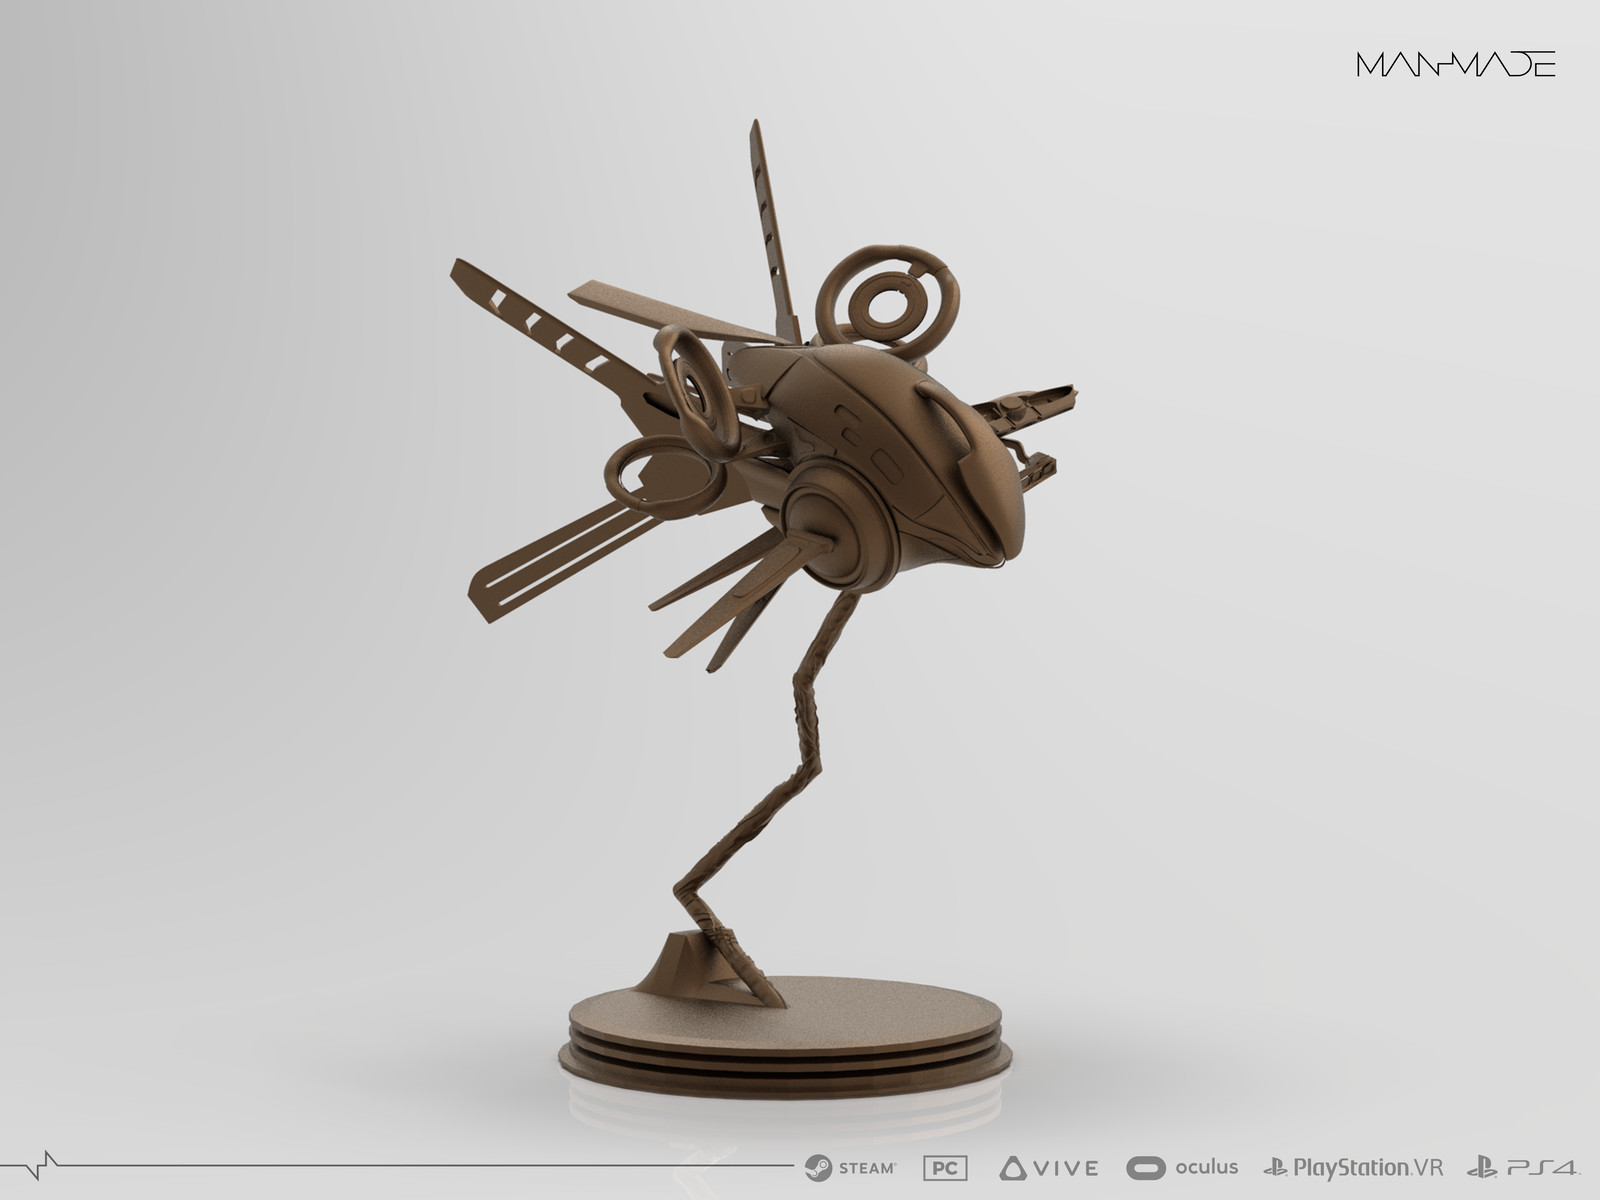 Drone Statue Design for Kickstarter Reward for ManMade: SciFi Action Adventure Game (12cm)